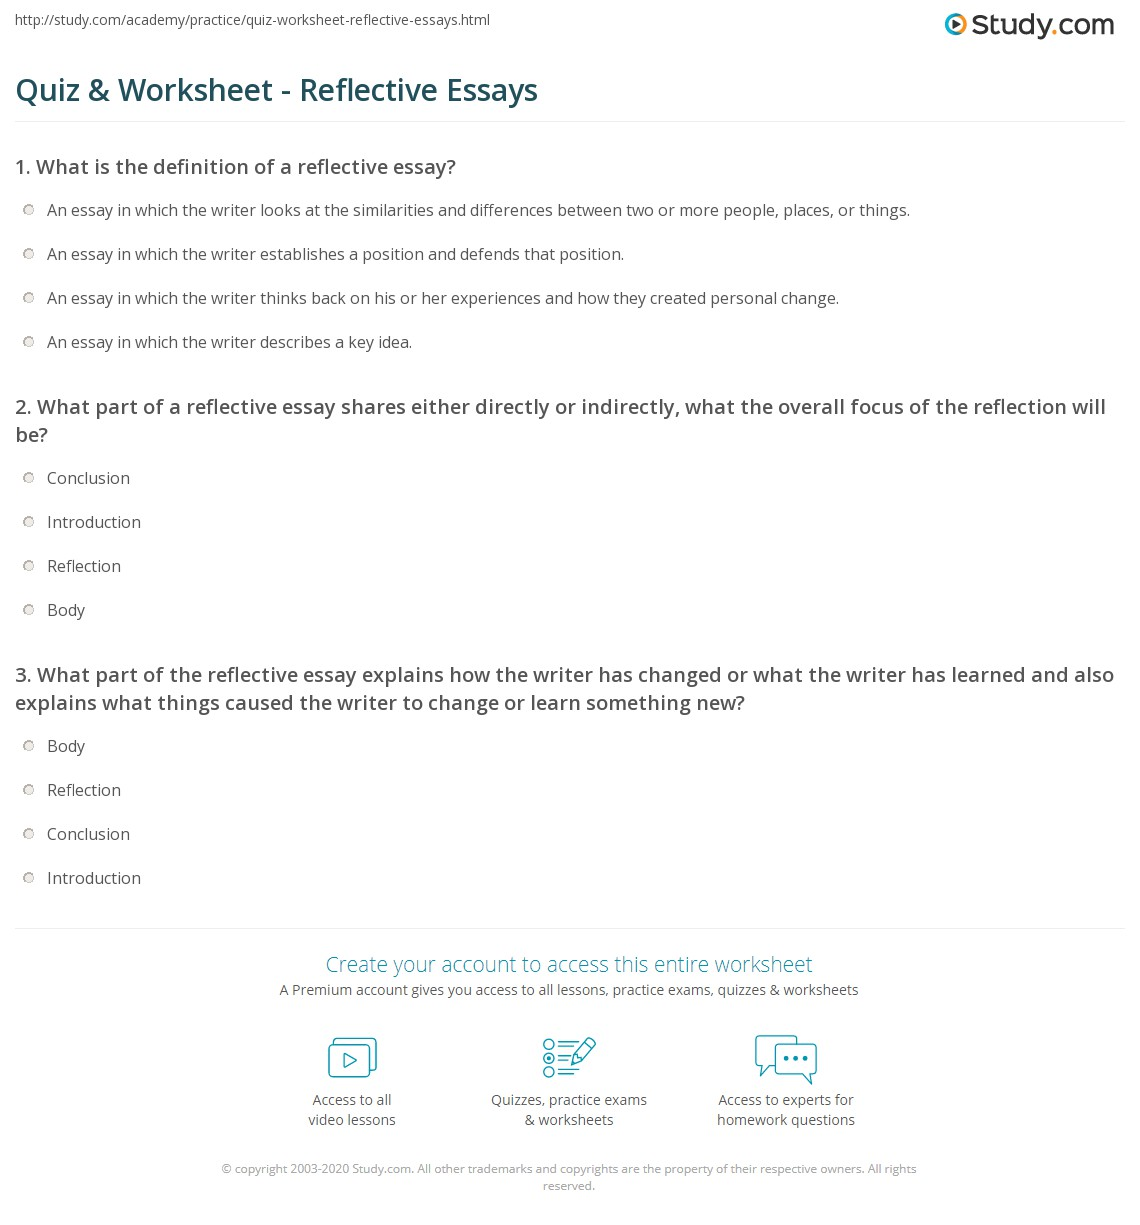 Quiz & Worksheet - Reflective Essays | Study.com